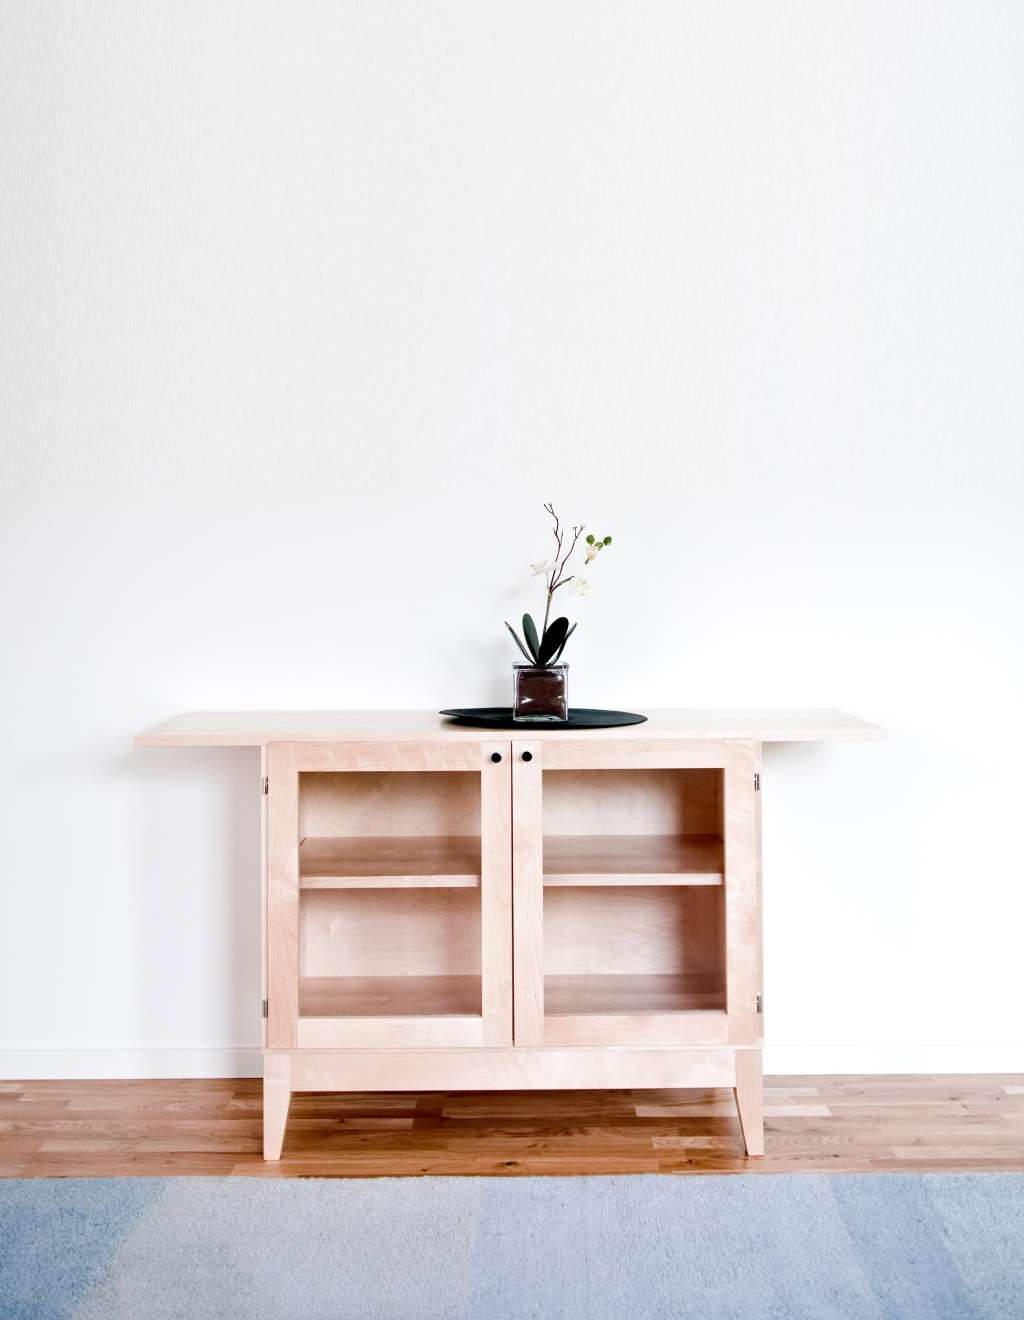 Making made easy best sources for unfinished wood furniture 48e39e4b77bc91890dad6e882ab3235b85d24bc1